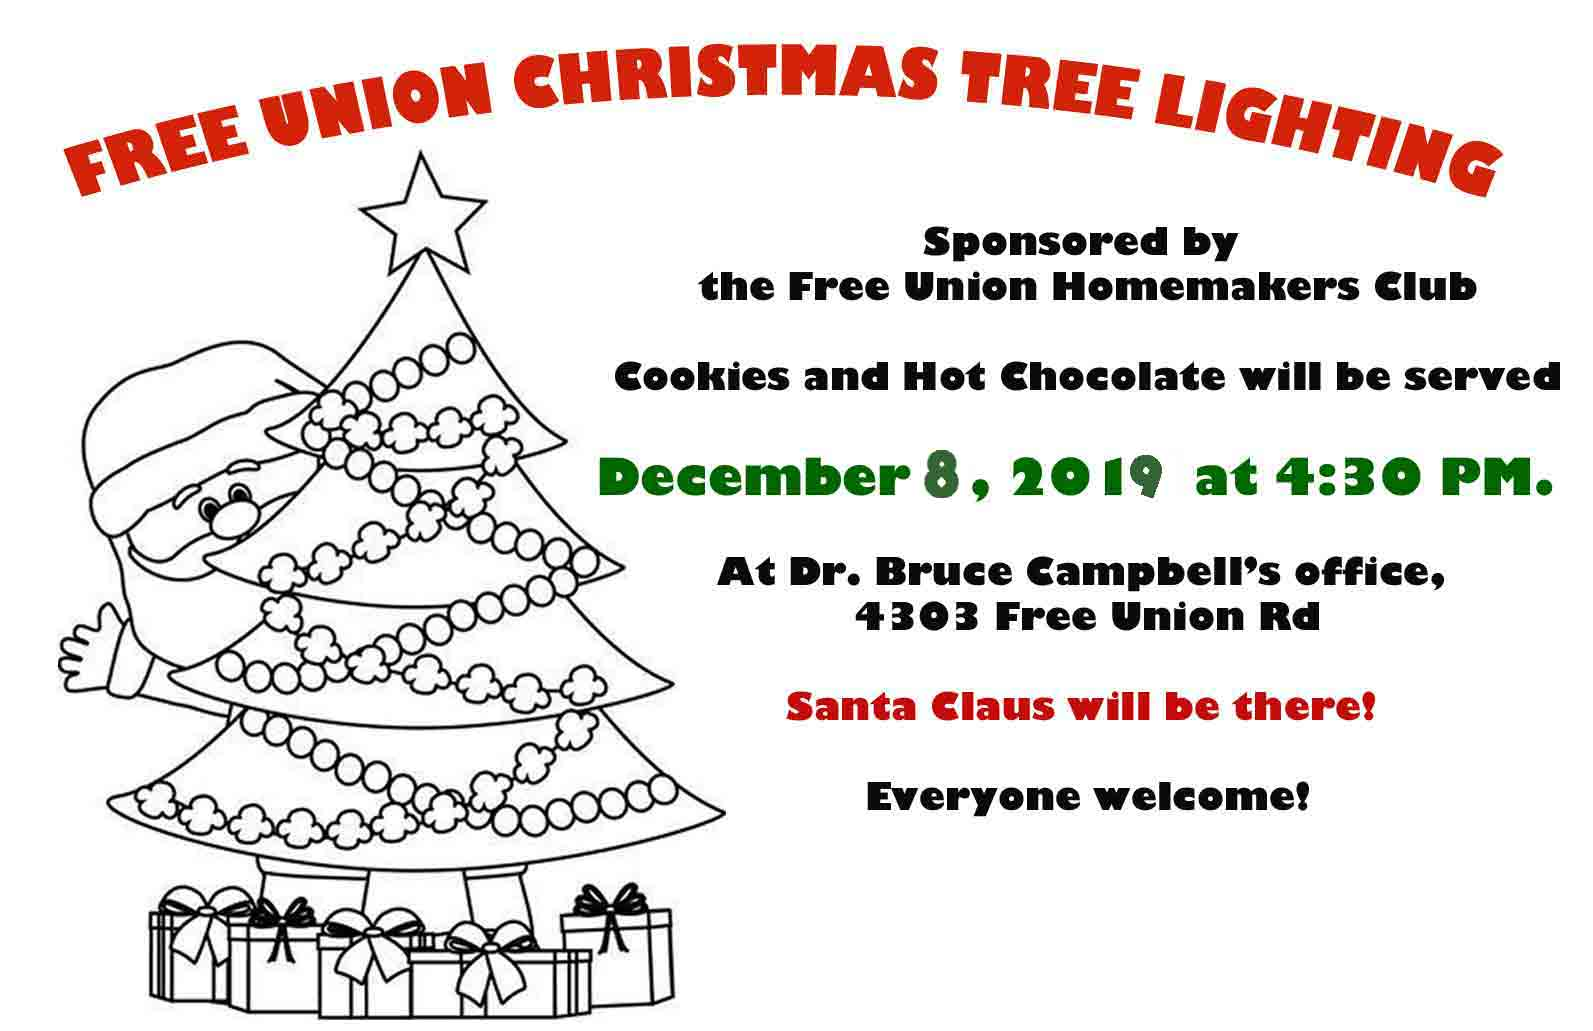 Free Union Christmas Tree Lighting